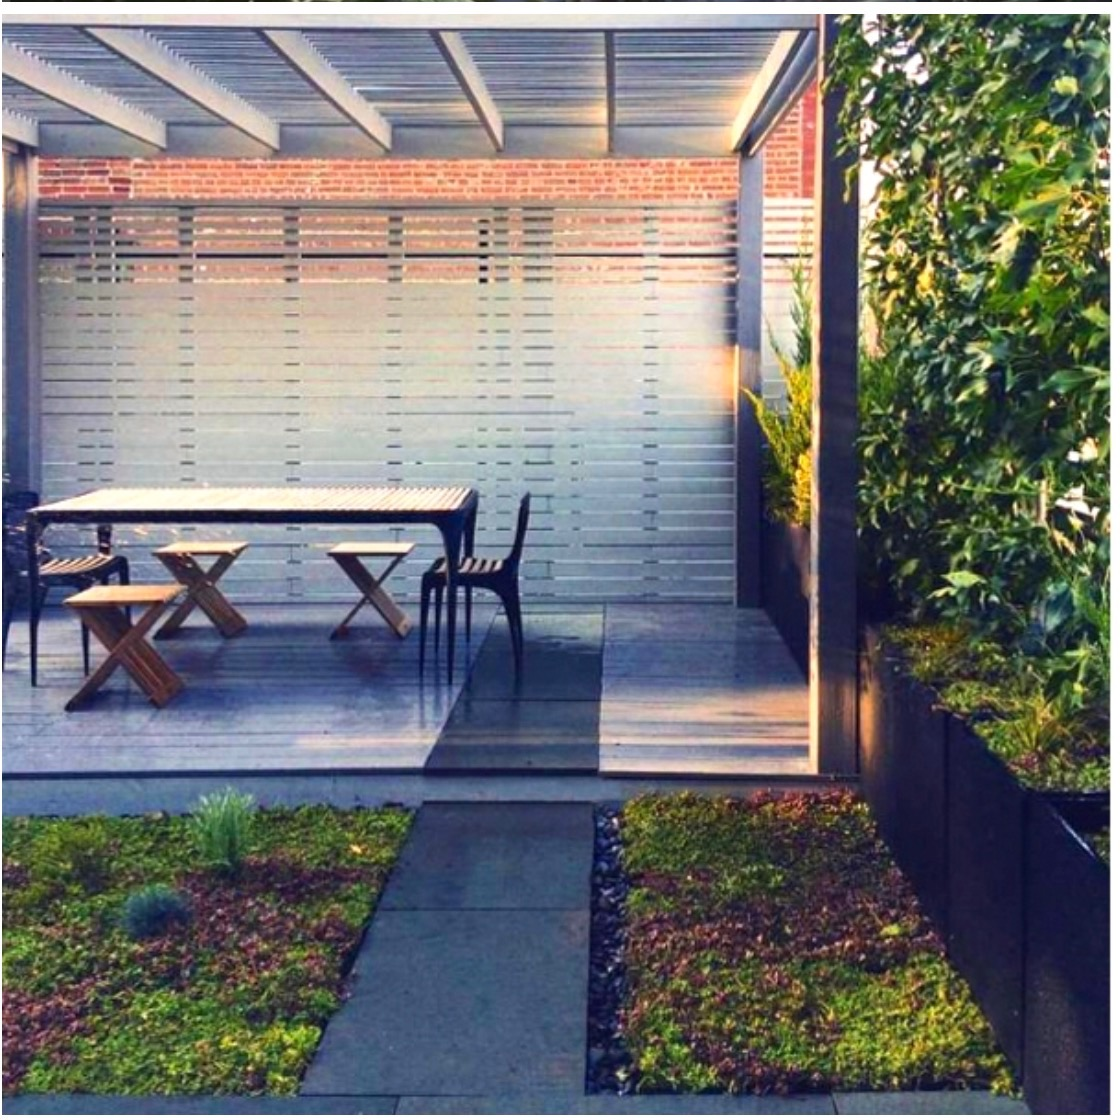 Green roof and garden on the 2nd floor, with several seating & dining areas, shade pergola, and screening from the street.